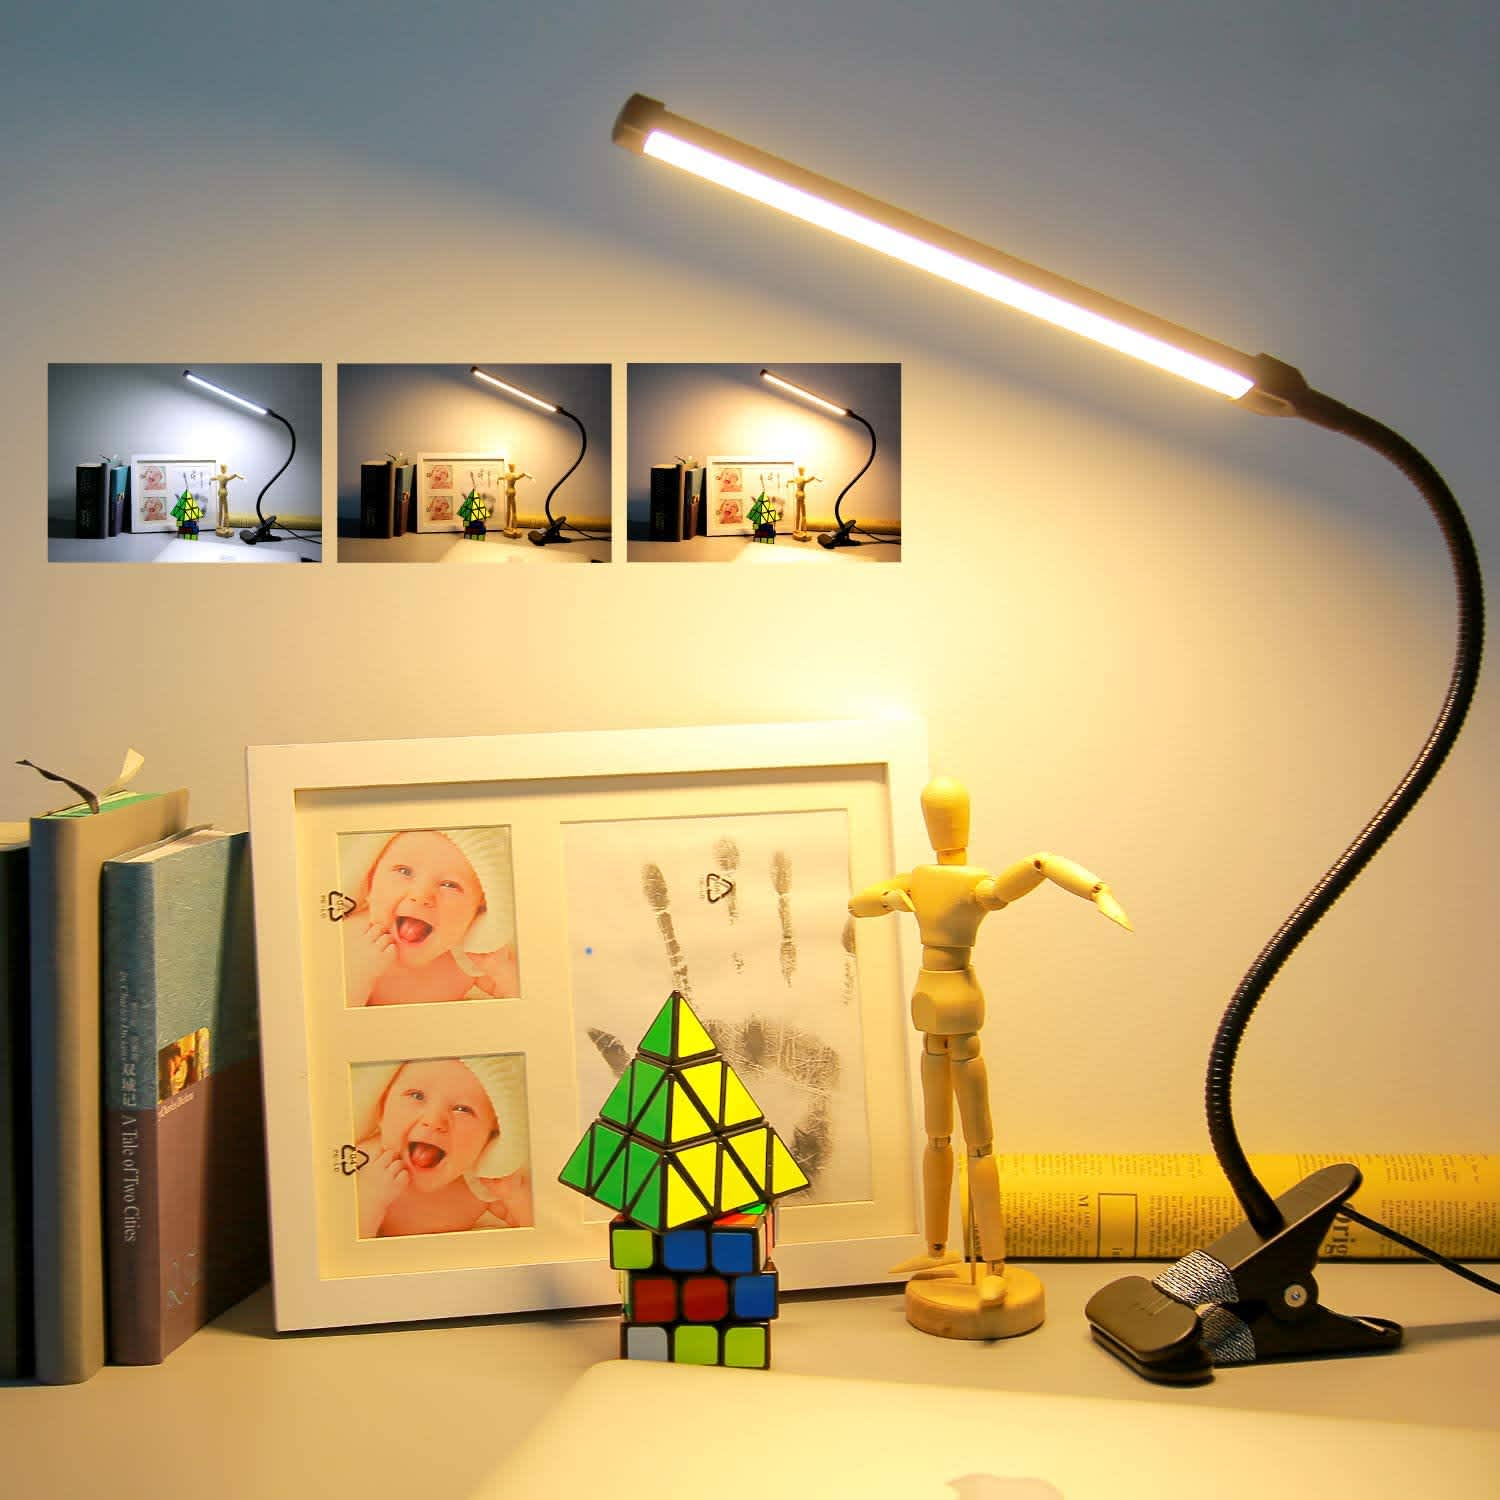 Raniaco LED Clip-On Light